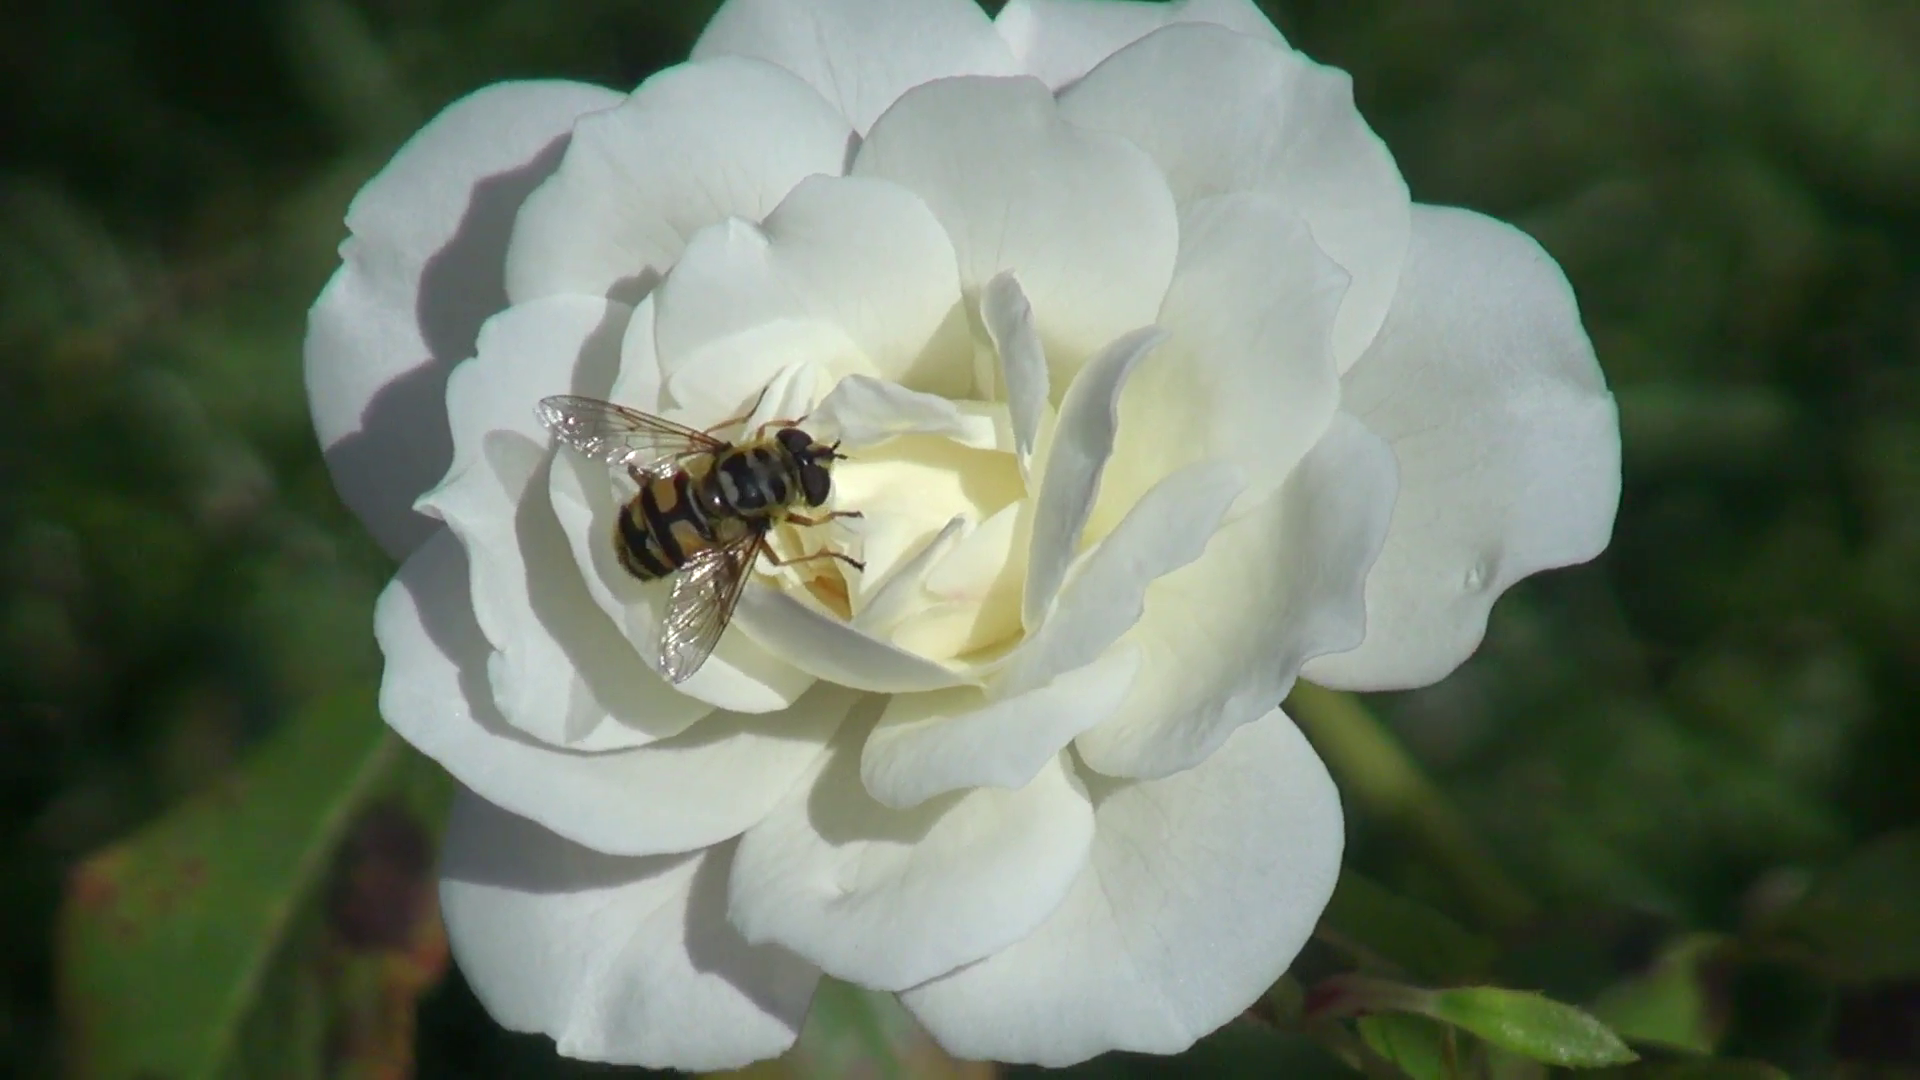 Beautiful white rose in the romantic garden, open rose, bumble bee ...